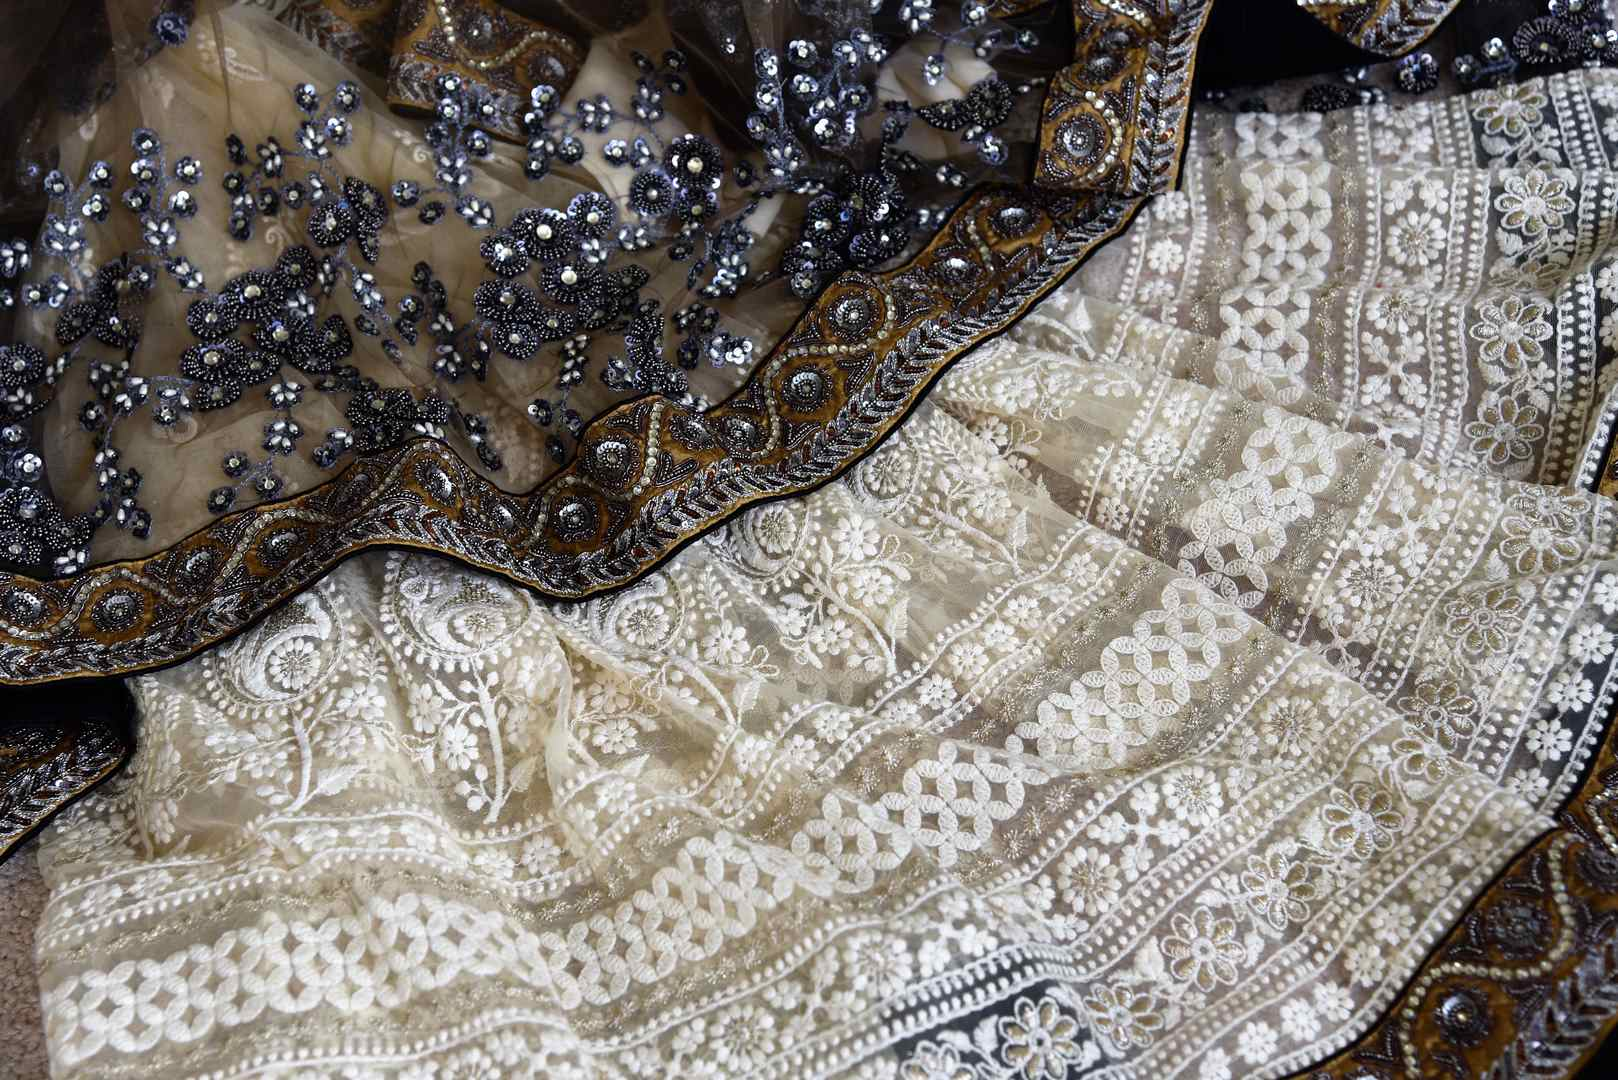 Shop off-white and black half n half embroidered net sari online in USA from Pure Elegance. Make your ethnic style perfect with a range of exquisite Indian designer saris, embroidered sarees, handloom saris available at our exclusive Indian fashion store in USA and also on our online store. Shop now.-details